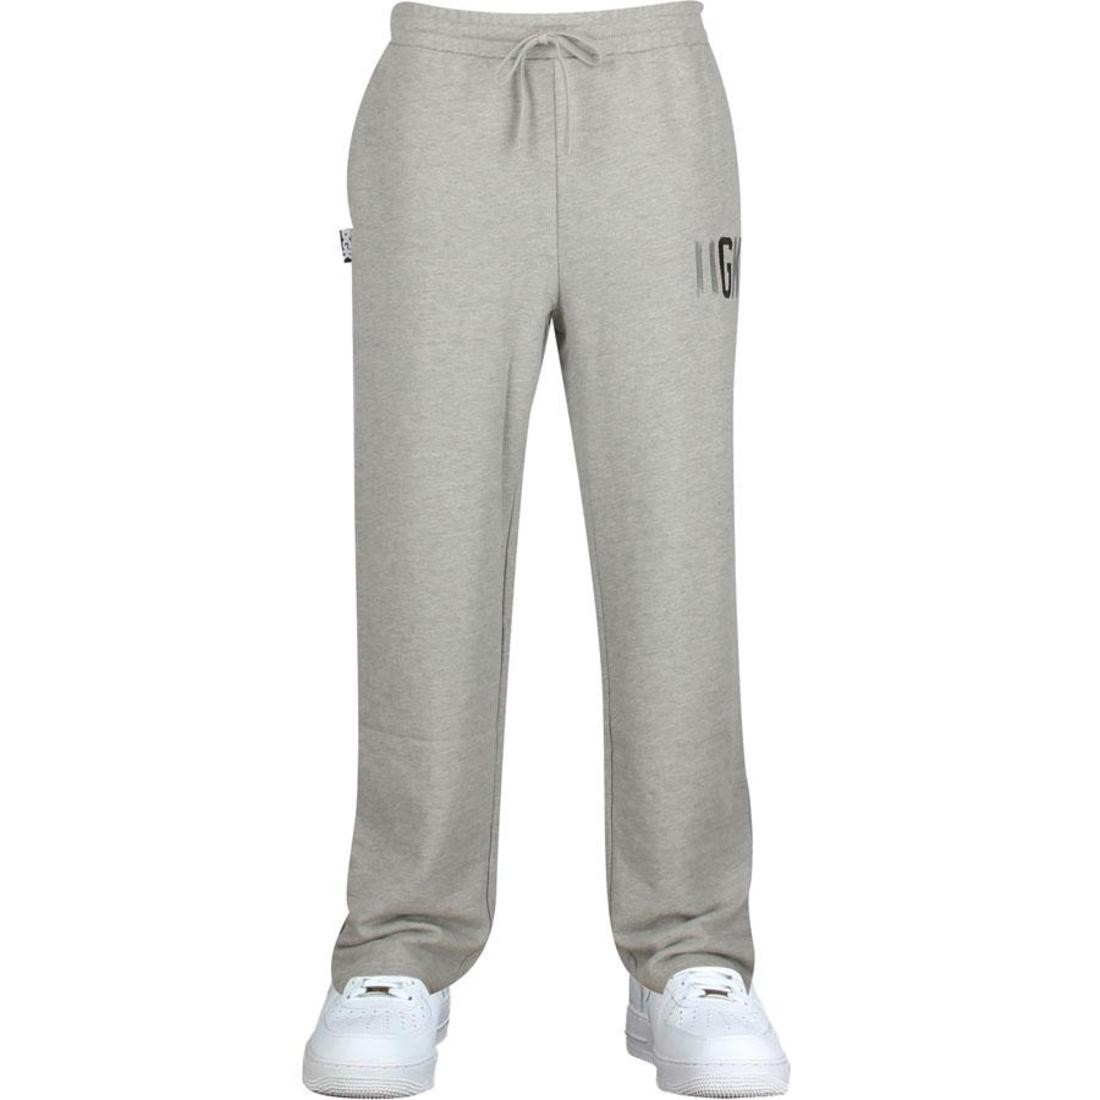 DGK G Fleece Pants (athletic heather)